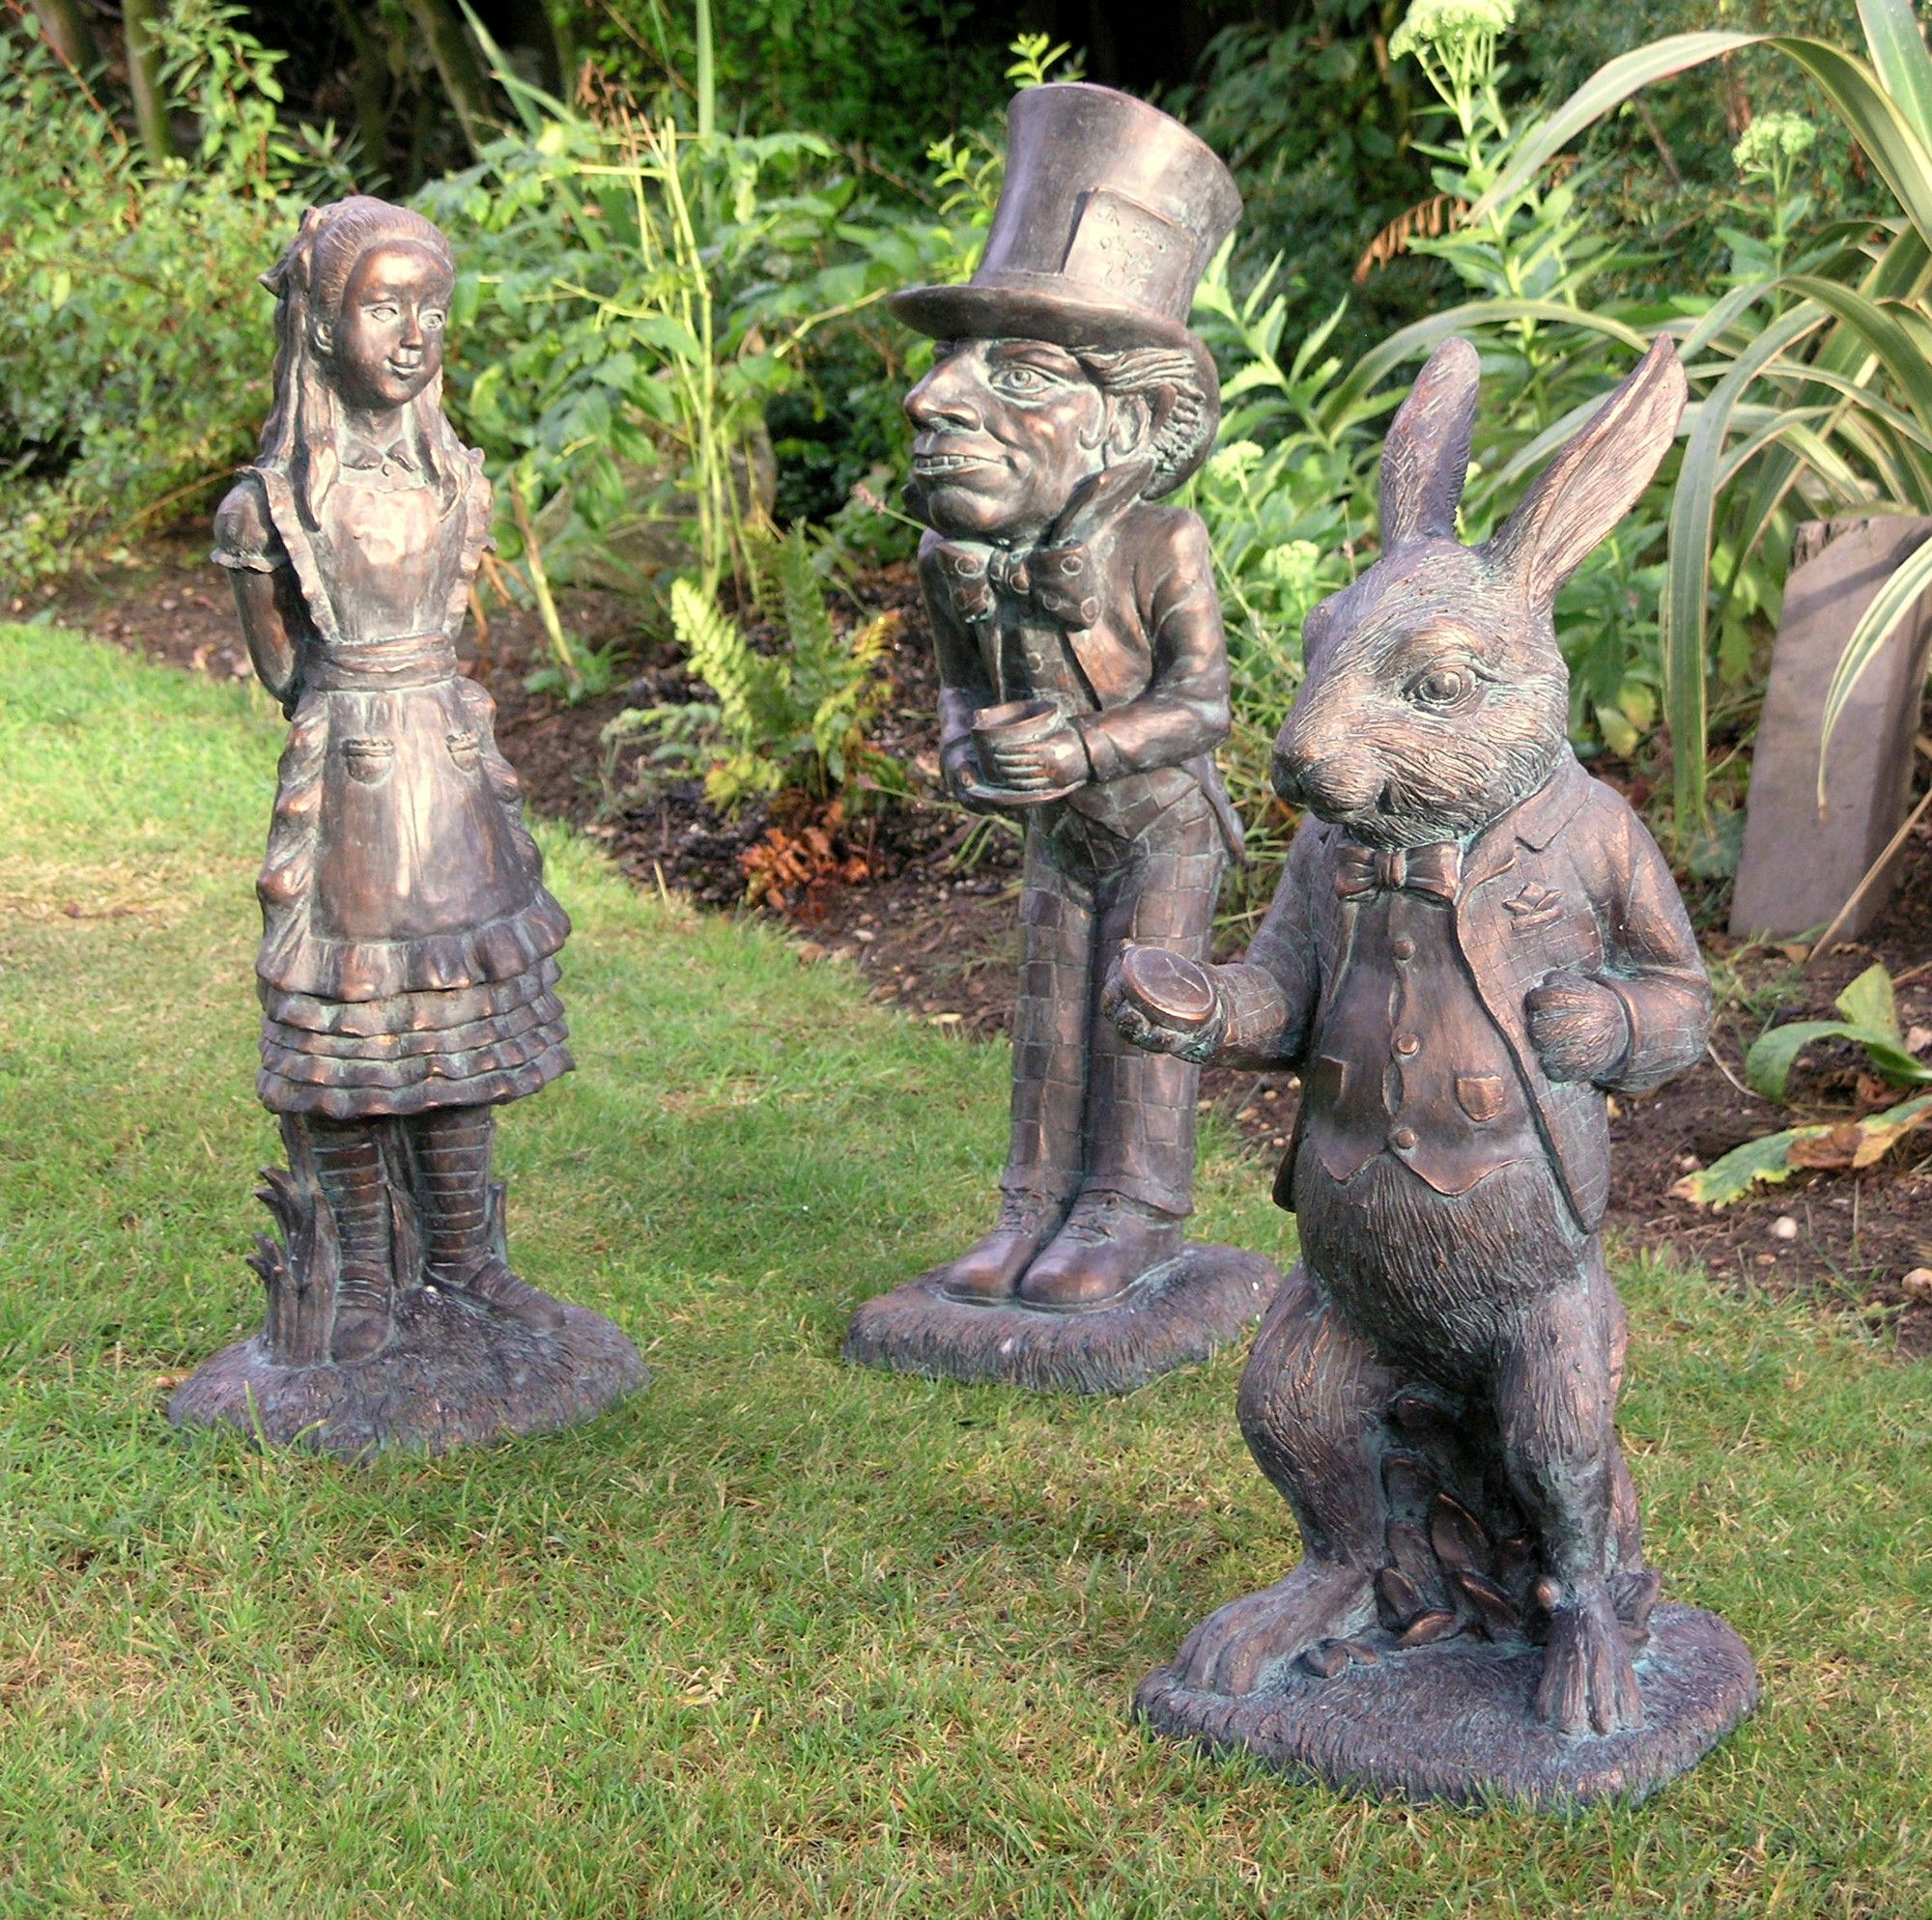 Garden Ornaments to Decorate Your Garden | Garden ornaments, Alice ...